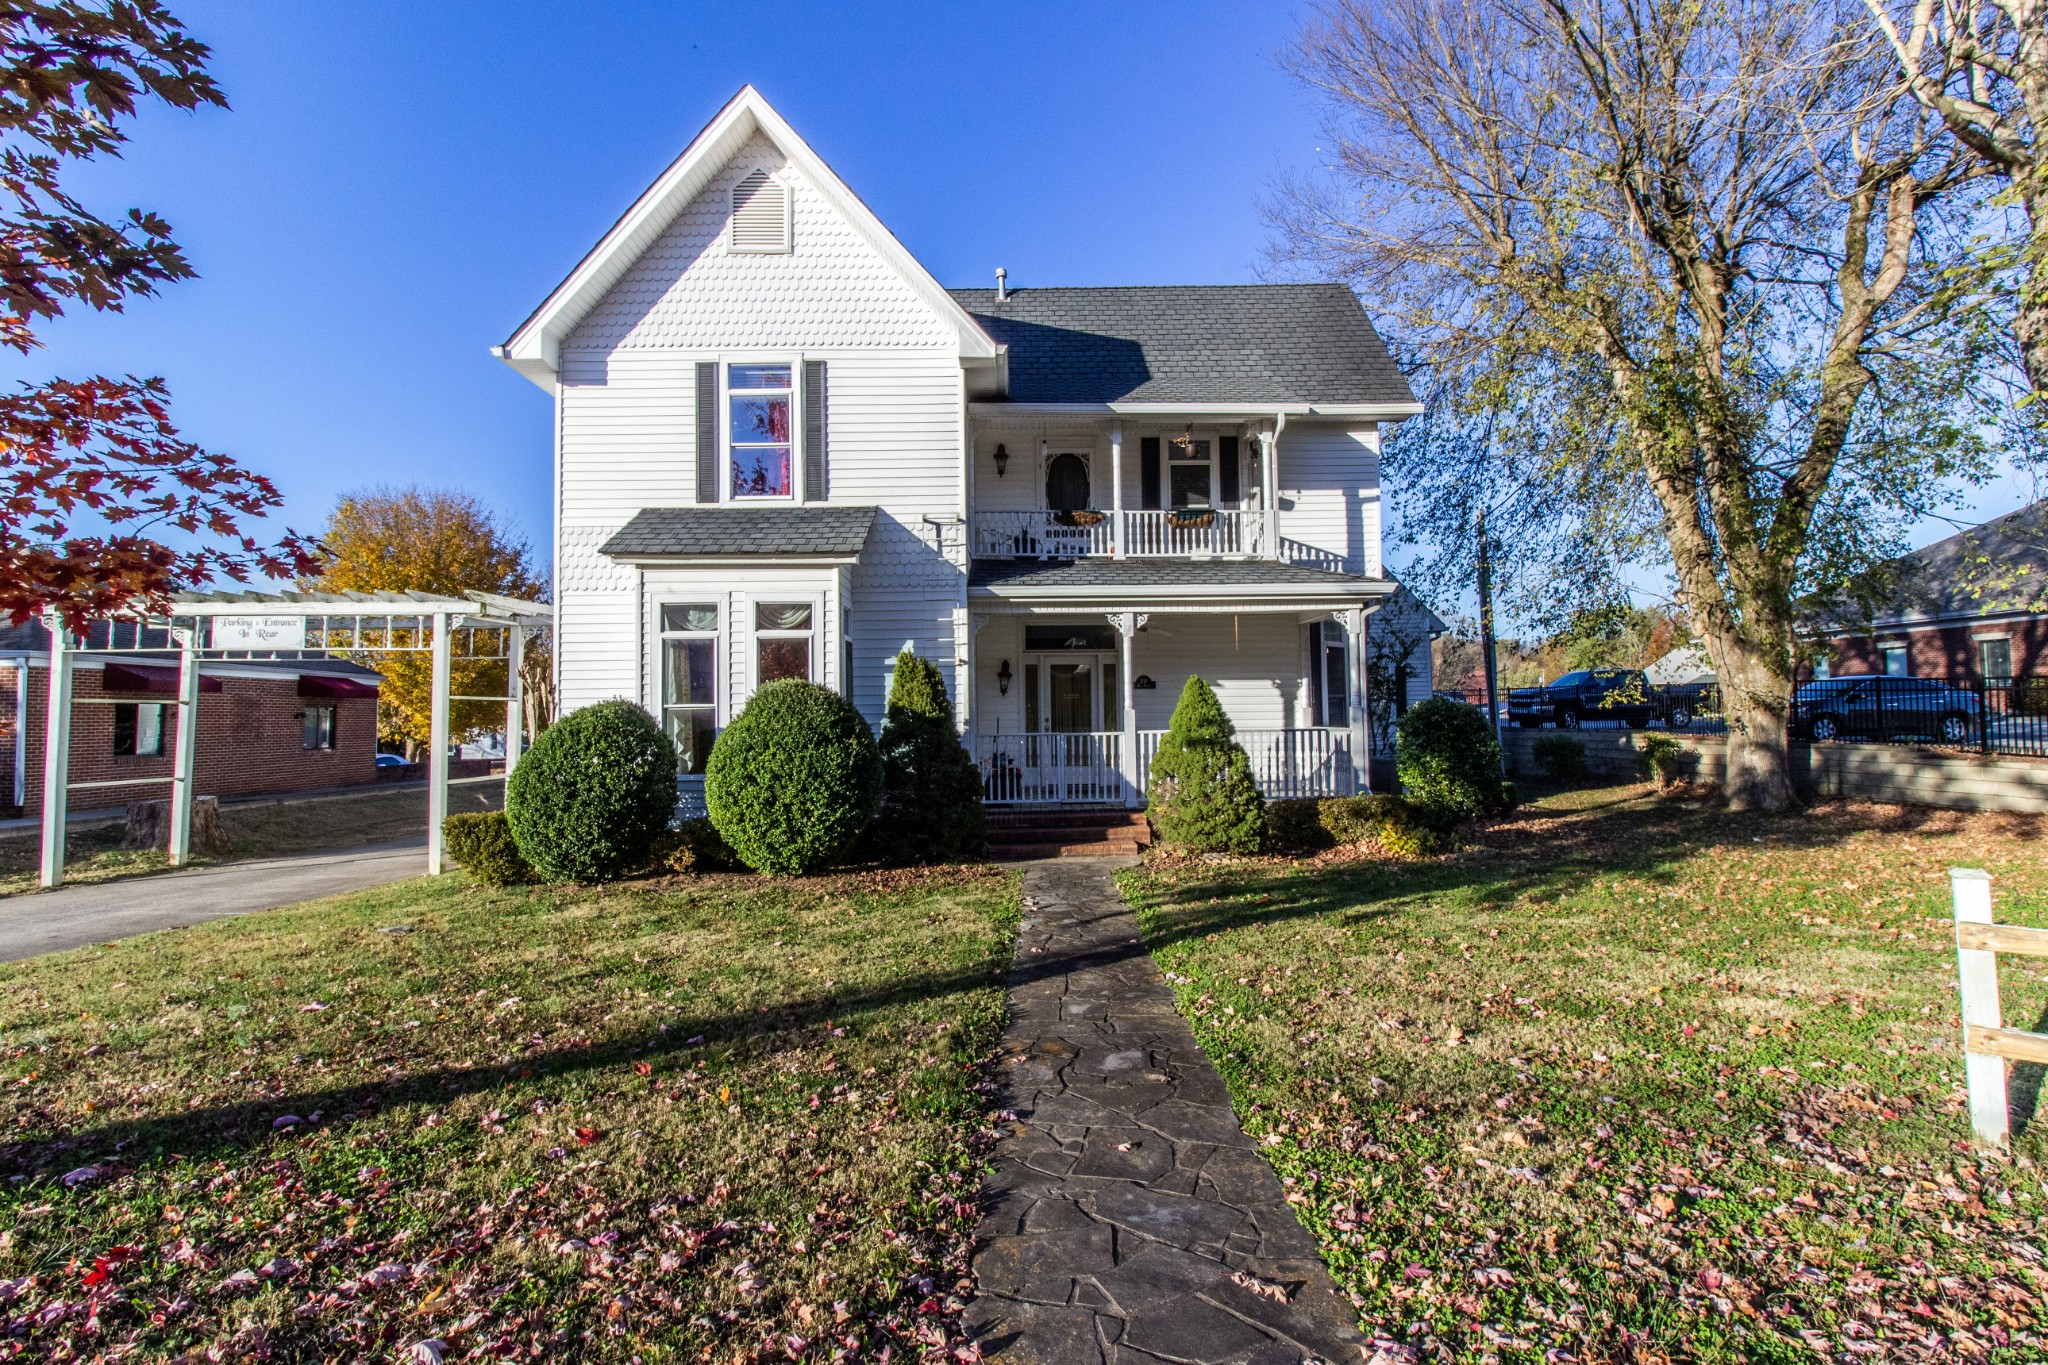 209 W Main St Property Photo - Waverly, TN real estate listing